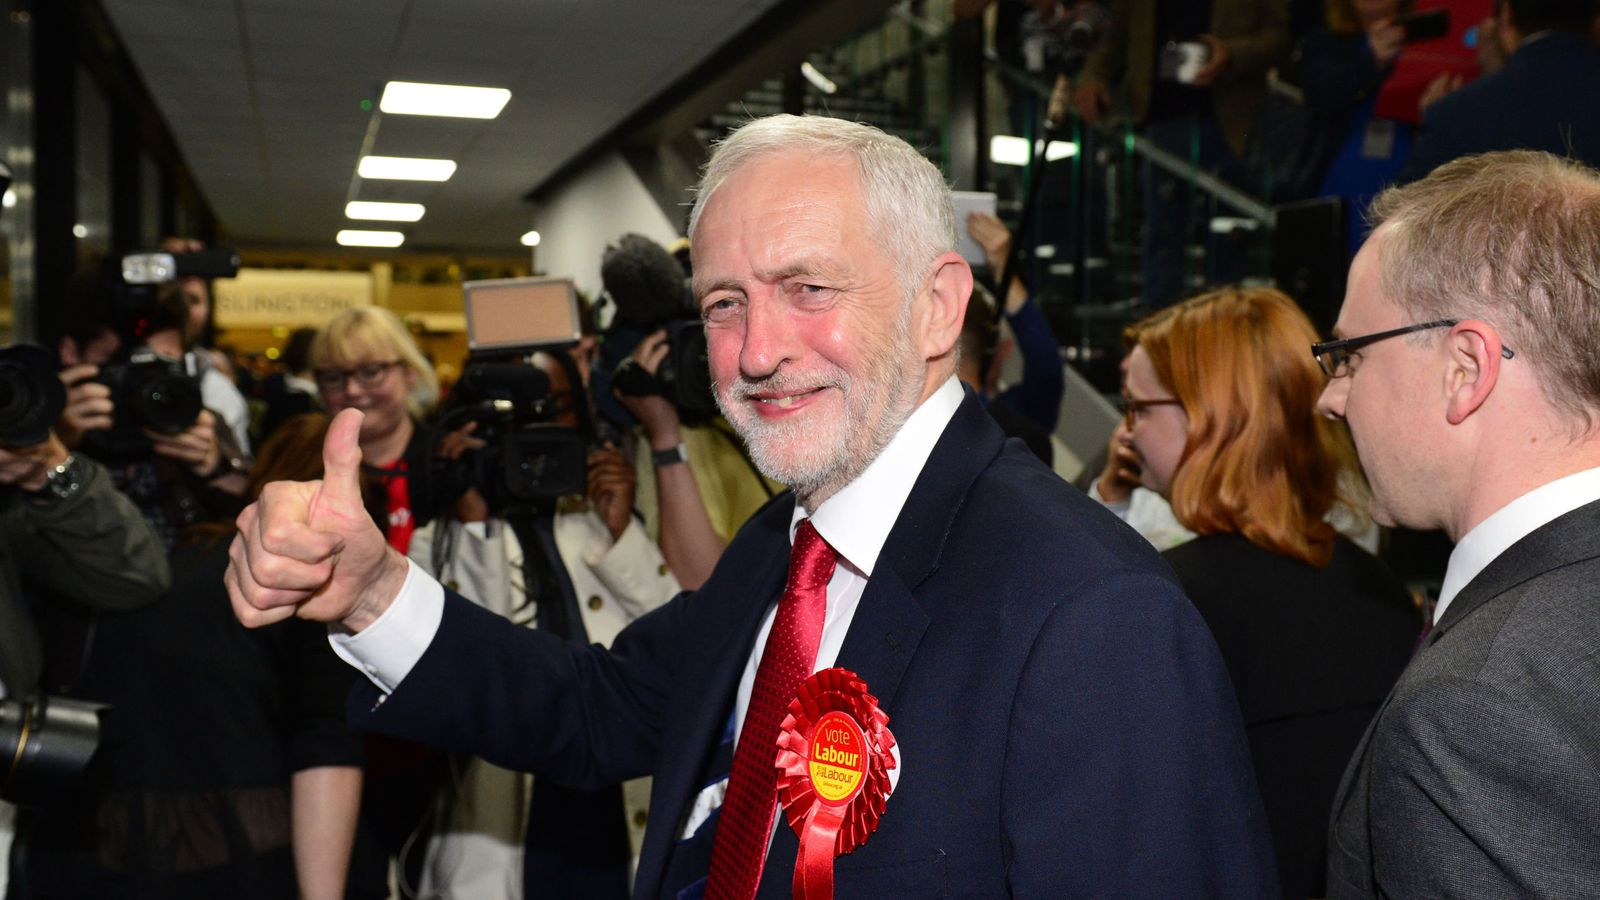 Jeremy Corbyn looks confident as he arrives for his count at Sobell Leisure Centre in Islington, north London